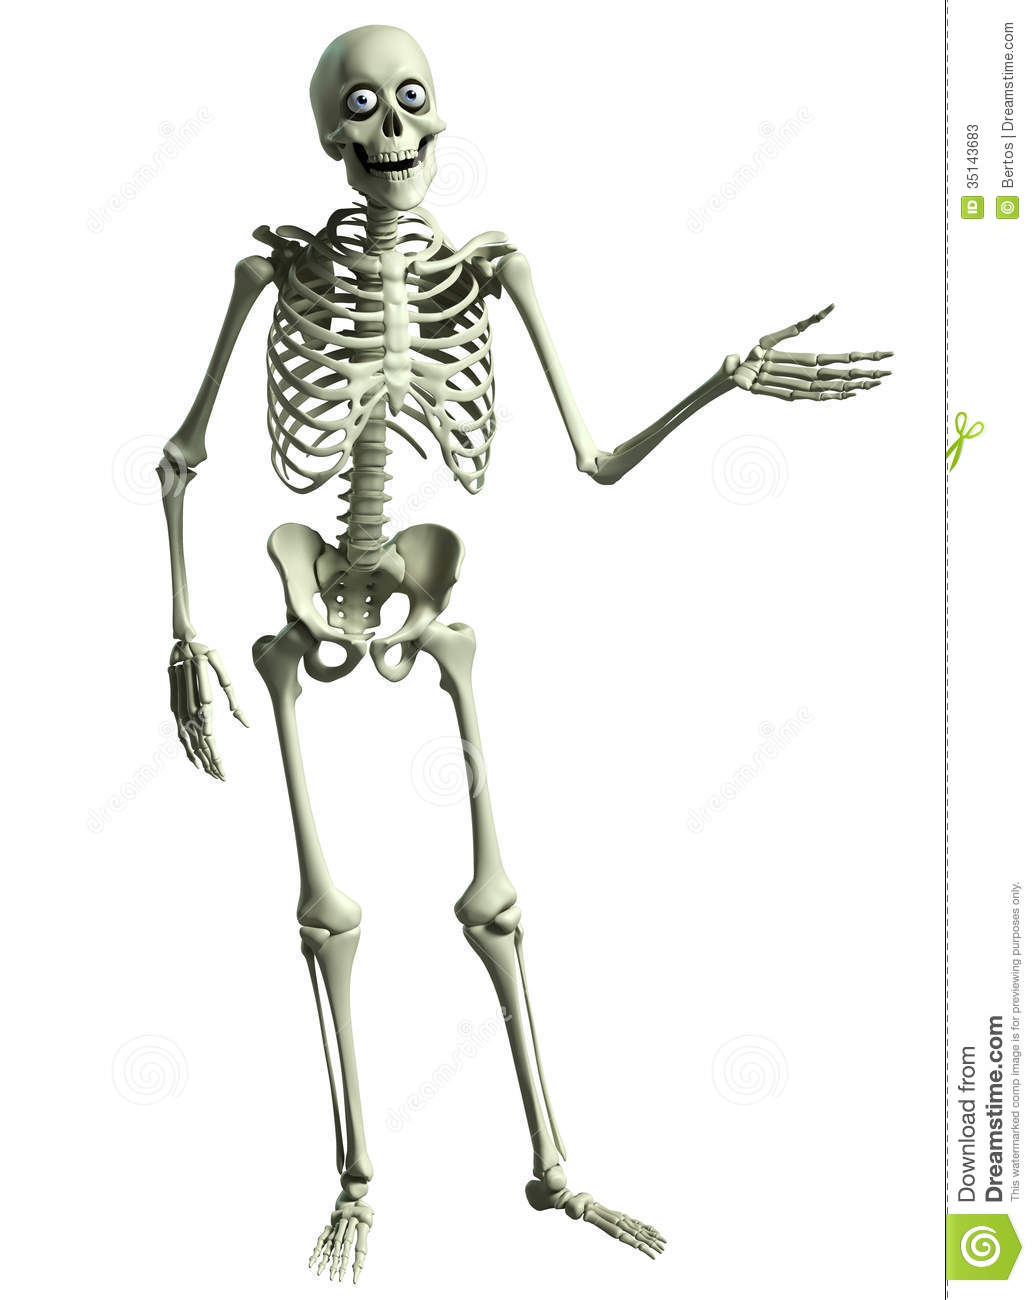 3d cartoon skeleton stock photos - image: 35143683, Skeleton